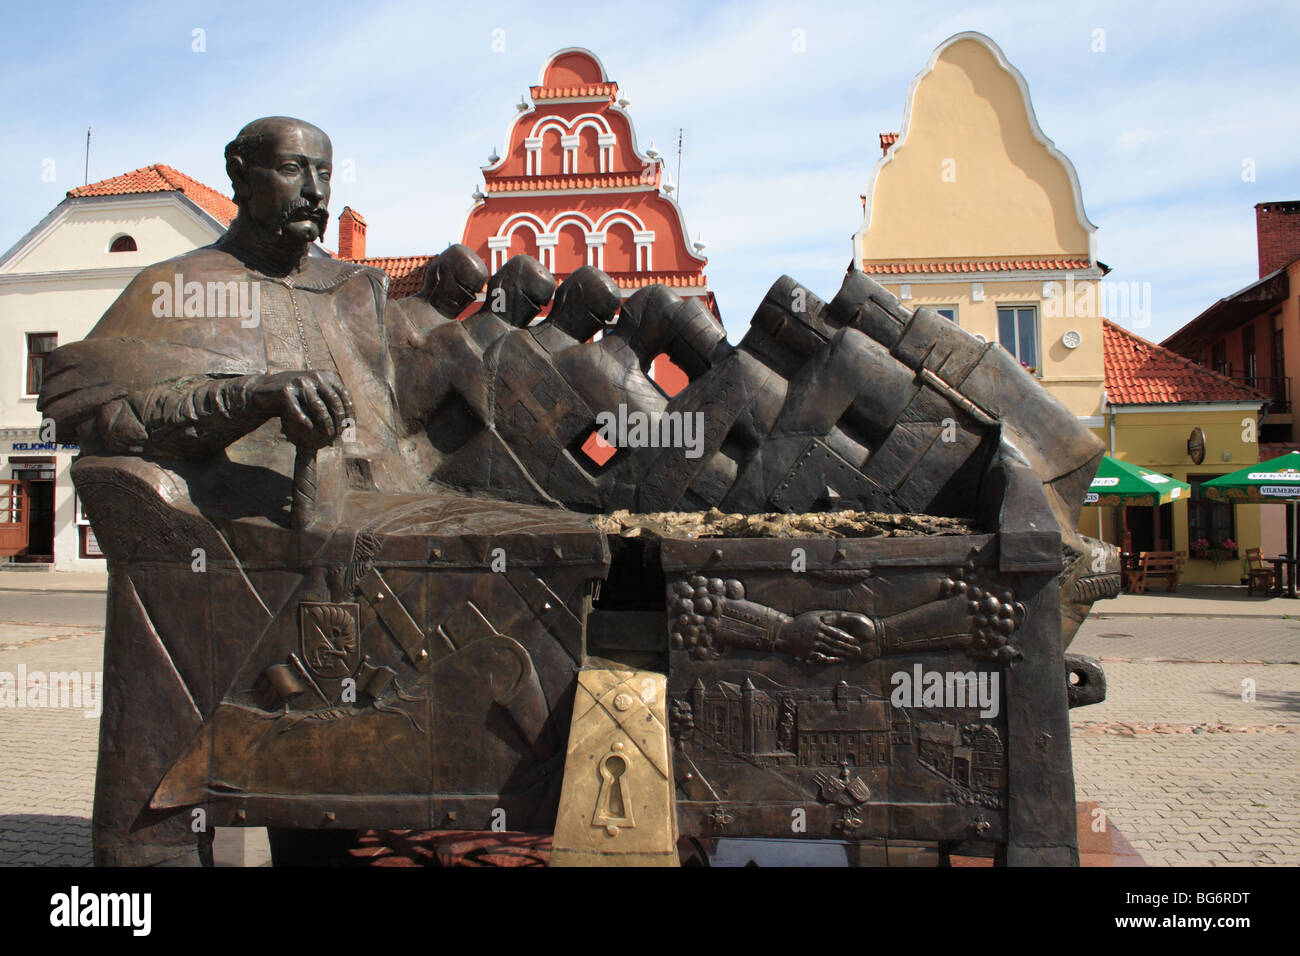 Duke Radziwill monument in Kiejdany, Lithuania - Stock Image